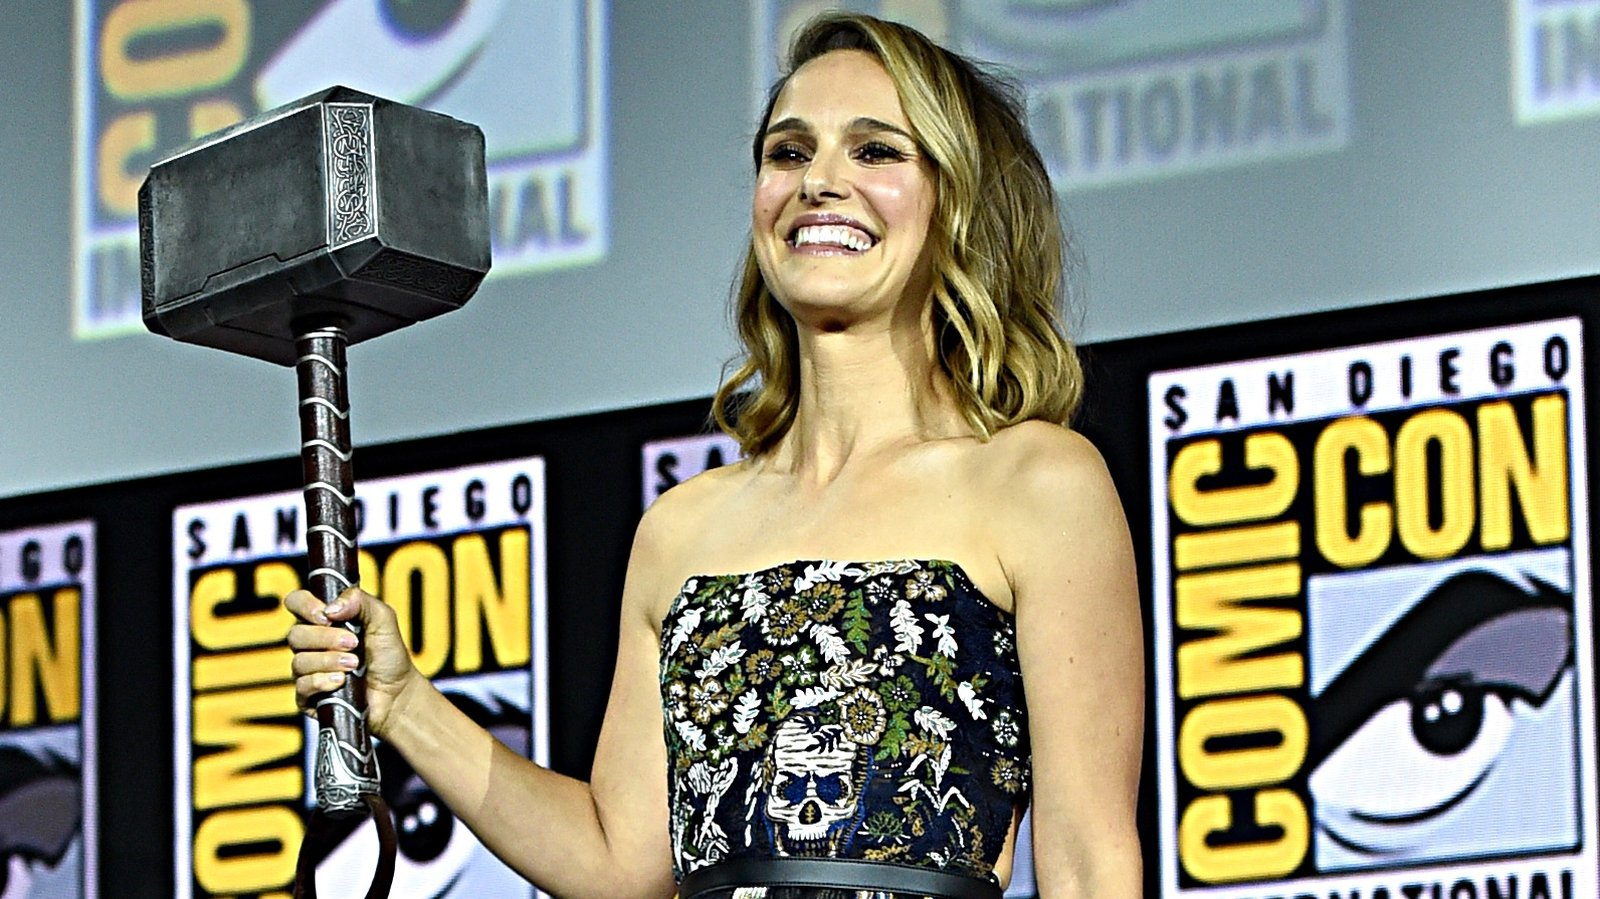 Natalie Portman to play female Thor in Marvel sequel